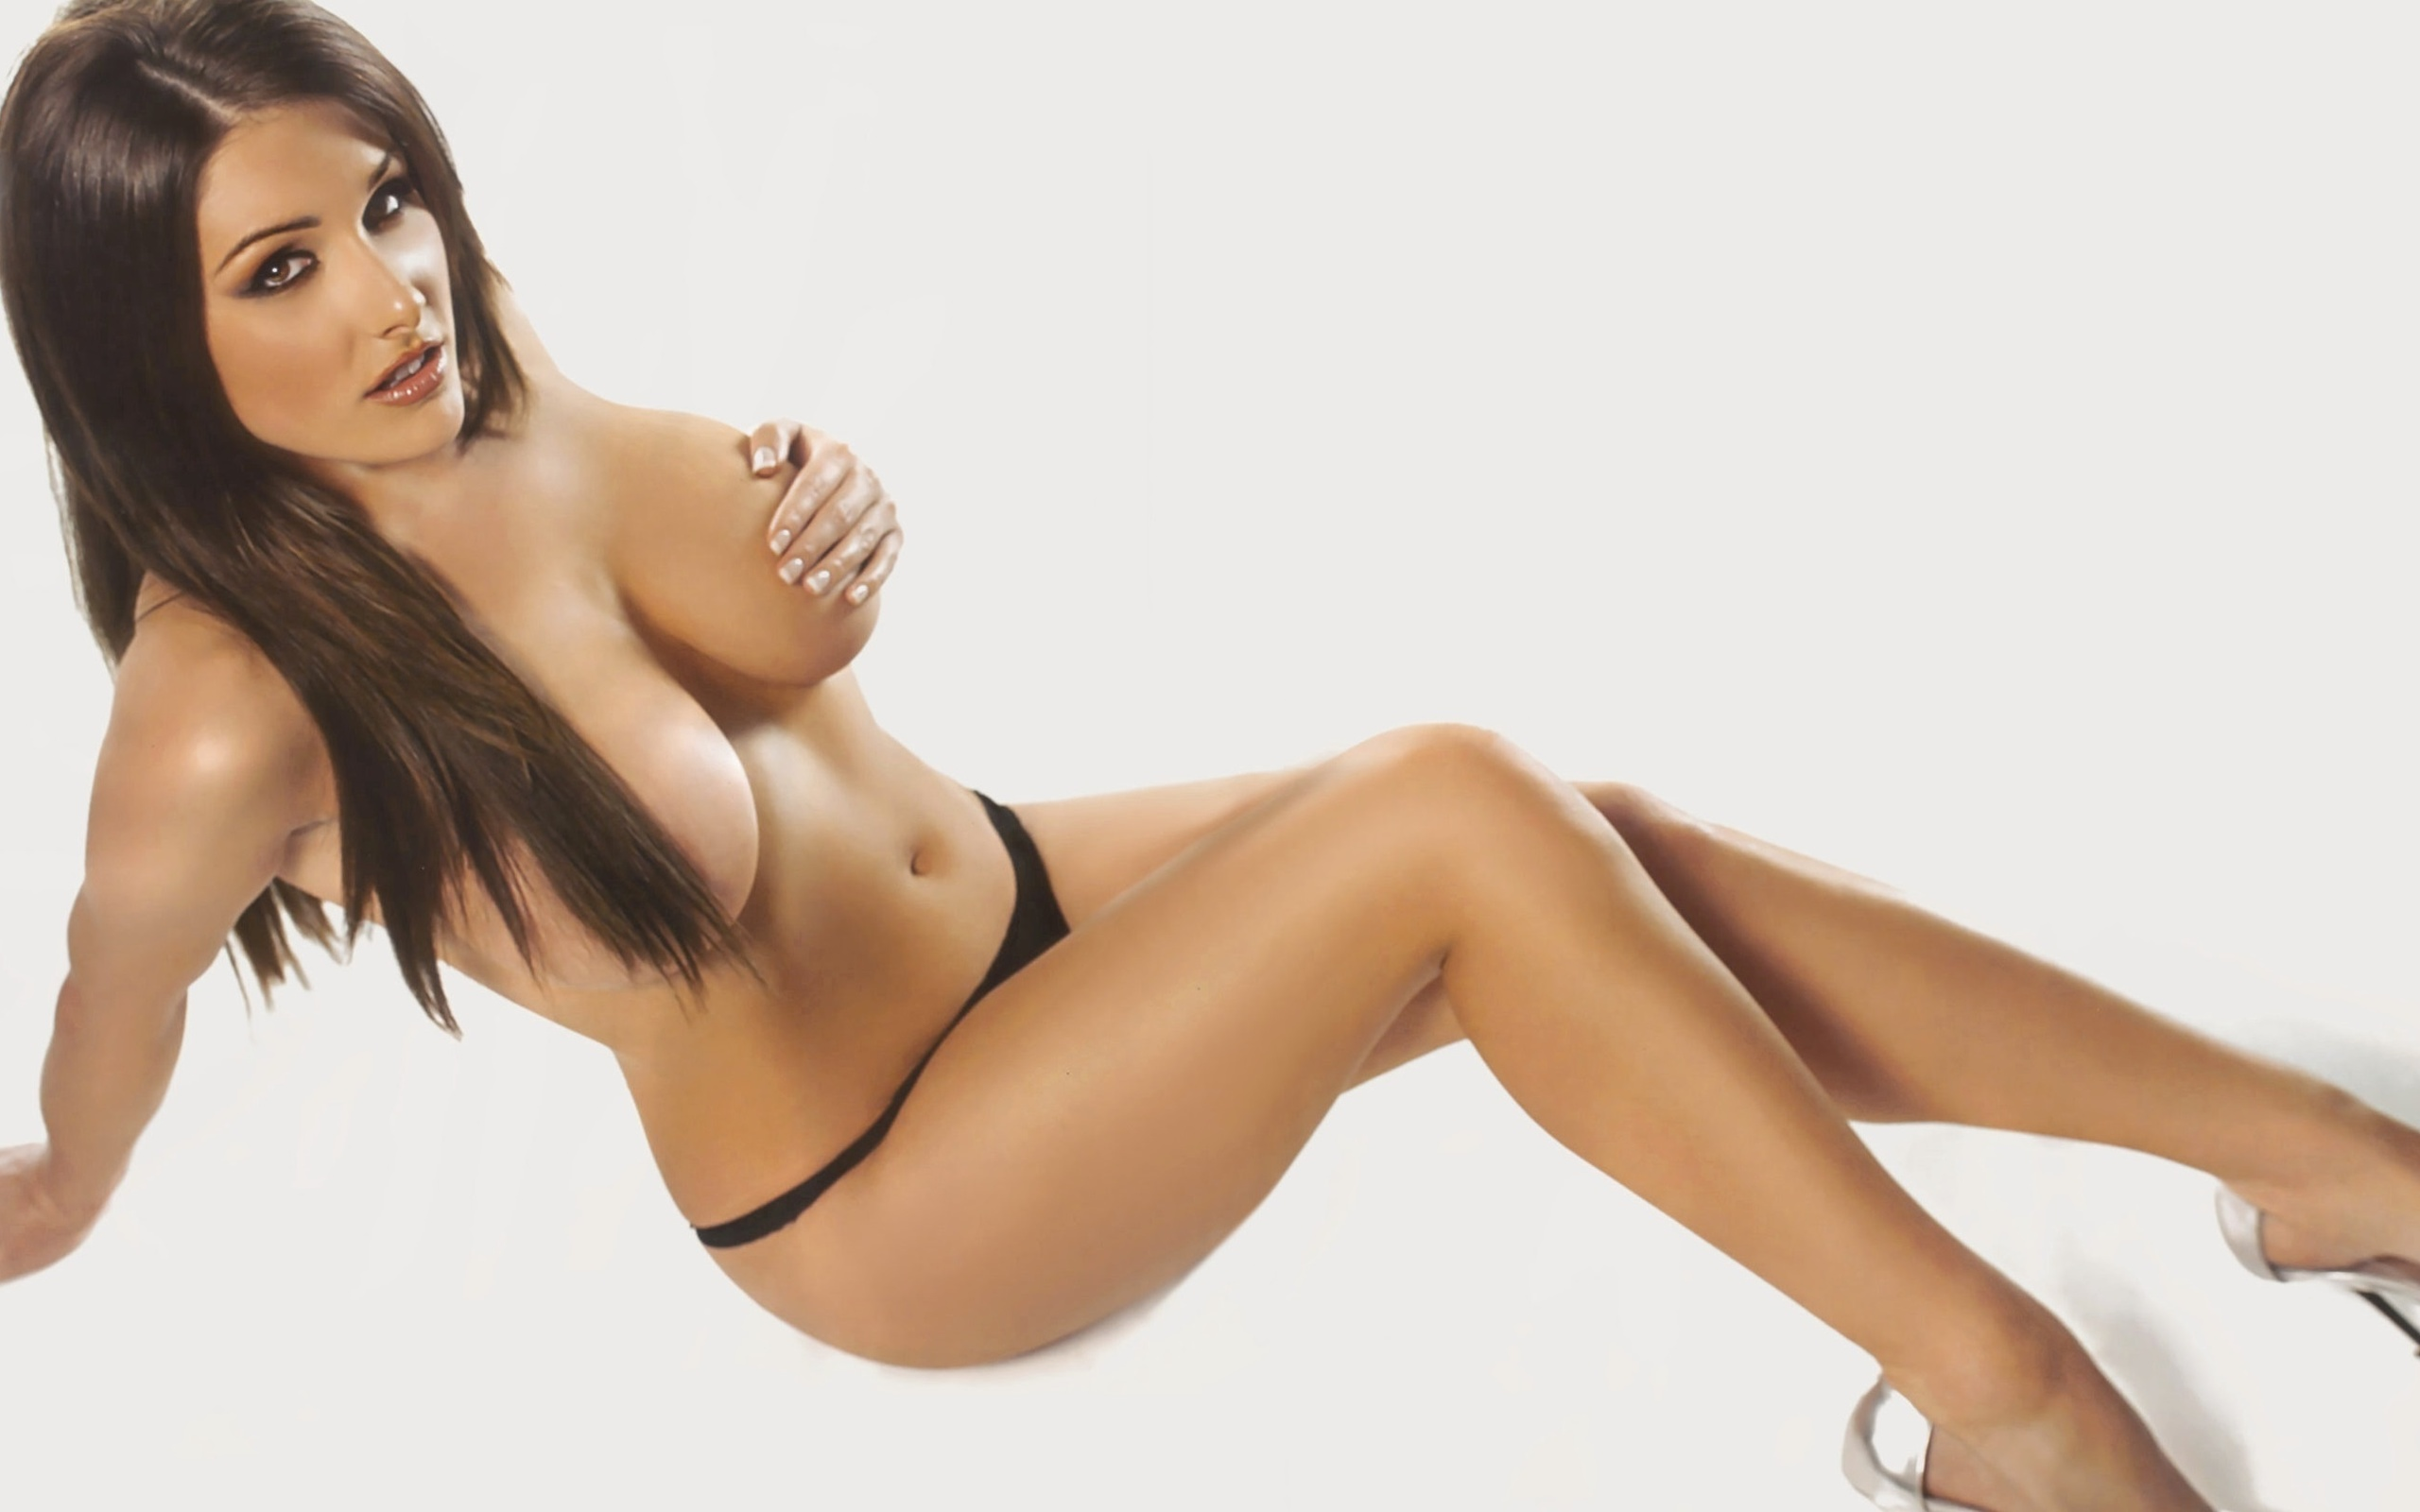 only-picture-of-sexiest-girl-with-figure